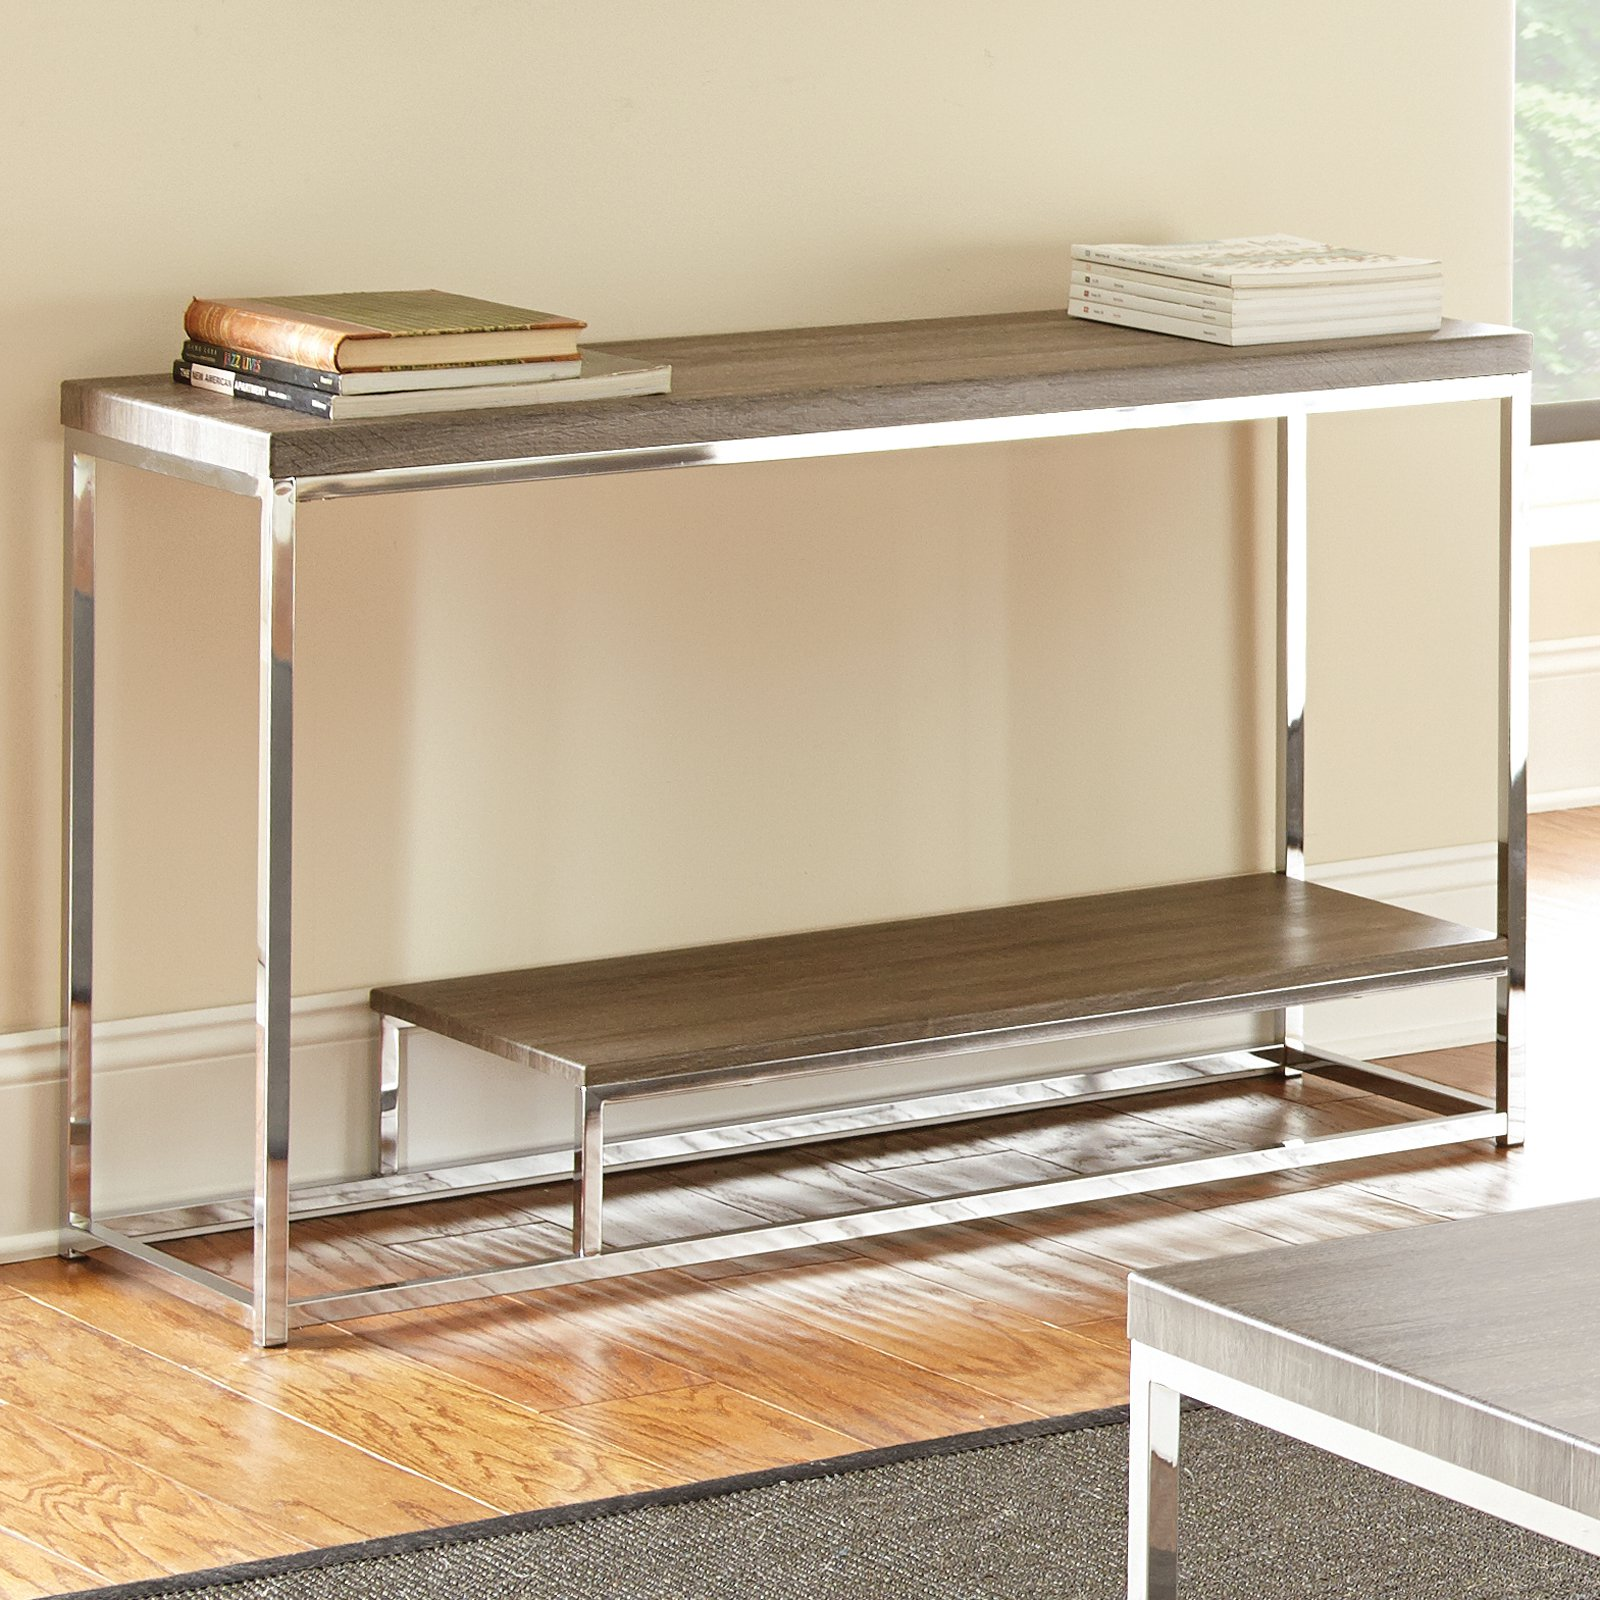 Lucia Sofa Table, Gray/Brown